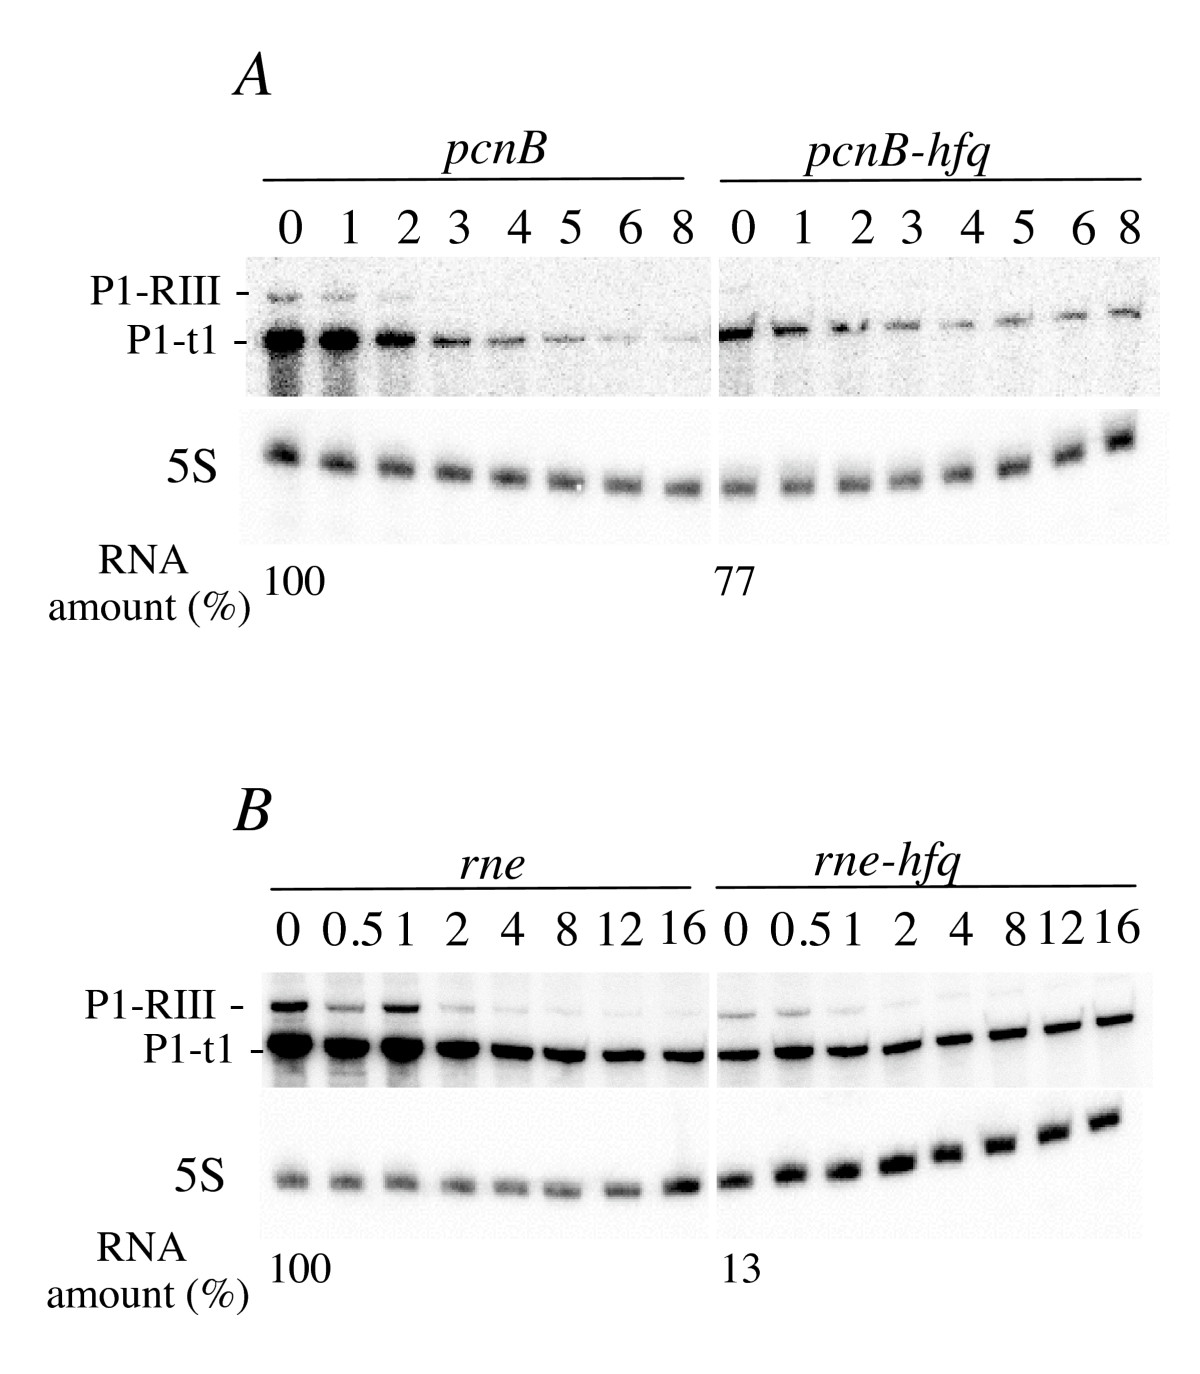 http://static-content.springer.com/image/art%3A10.1186%2F1471-2199-11-17/MediaObjects/12867_2009_Article_498_Fig2_HTML.jpg